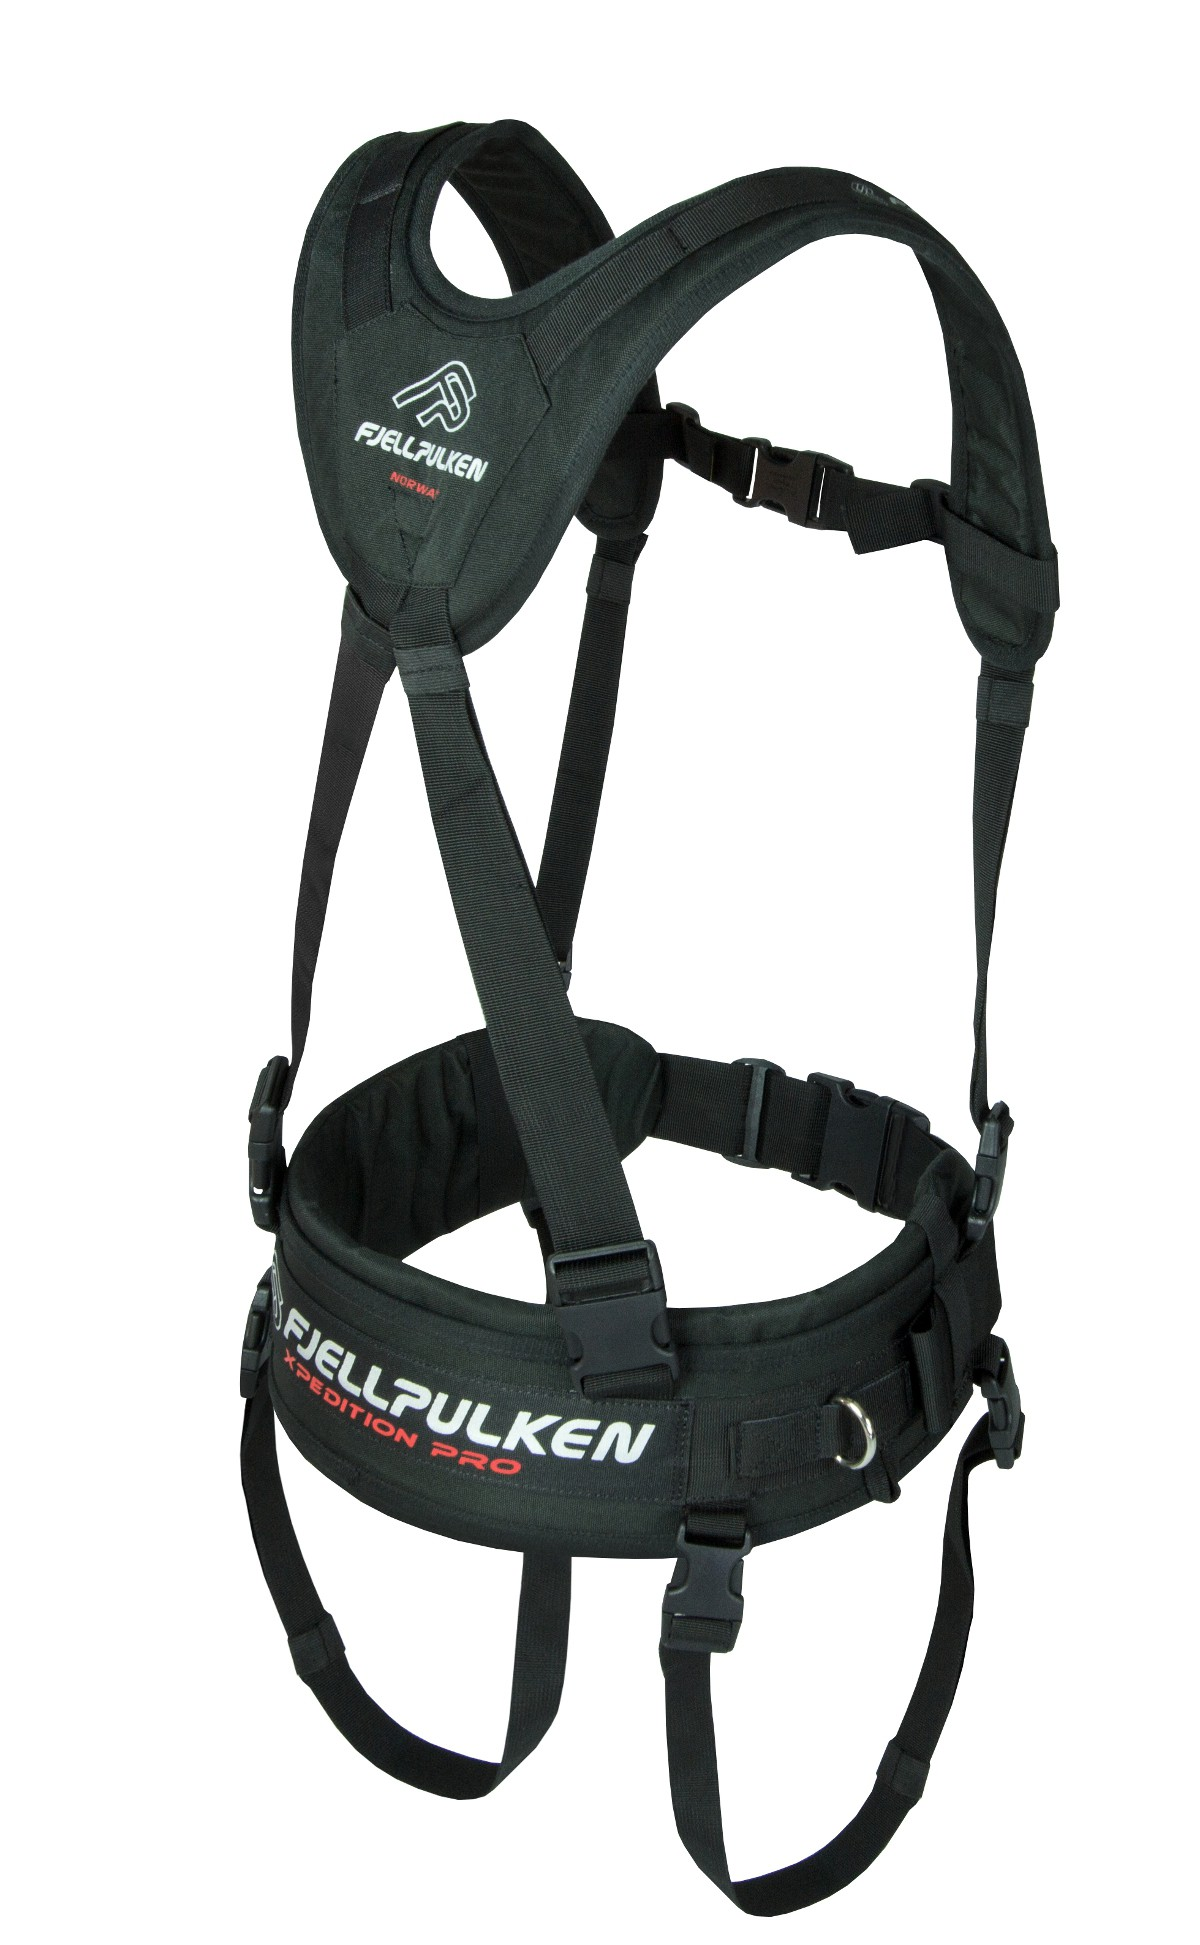 Harnais Expedition pulka Fjellpulken - Skier harness expedition